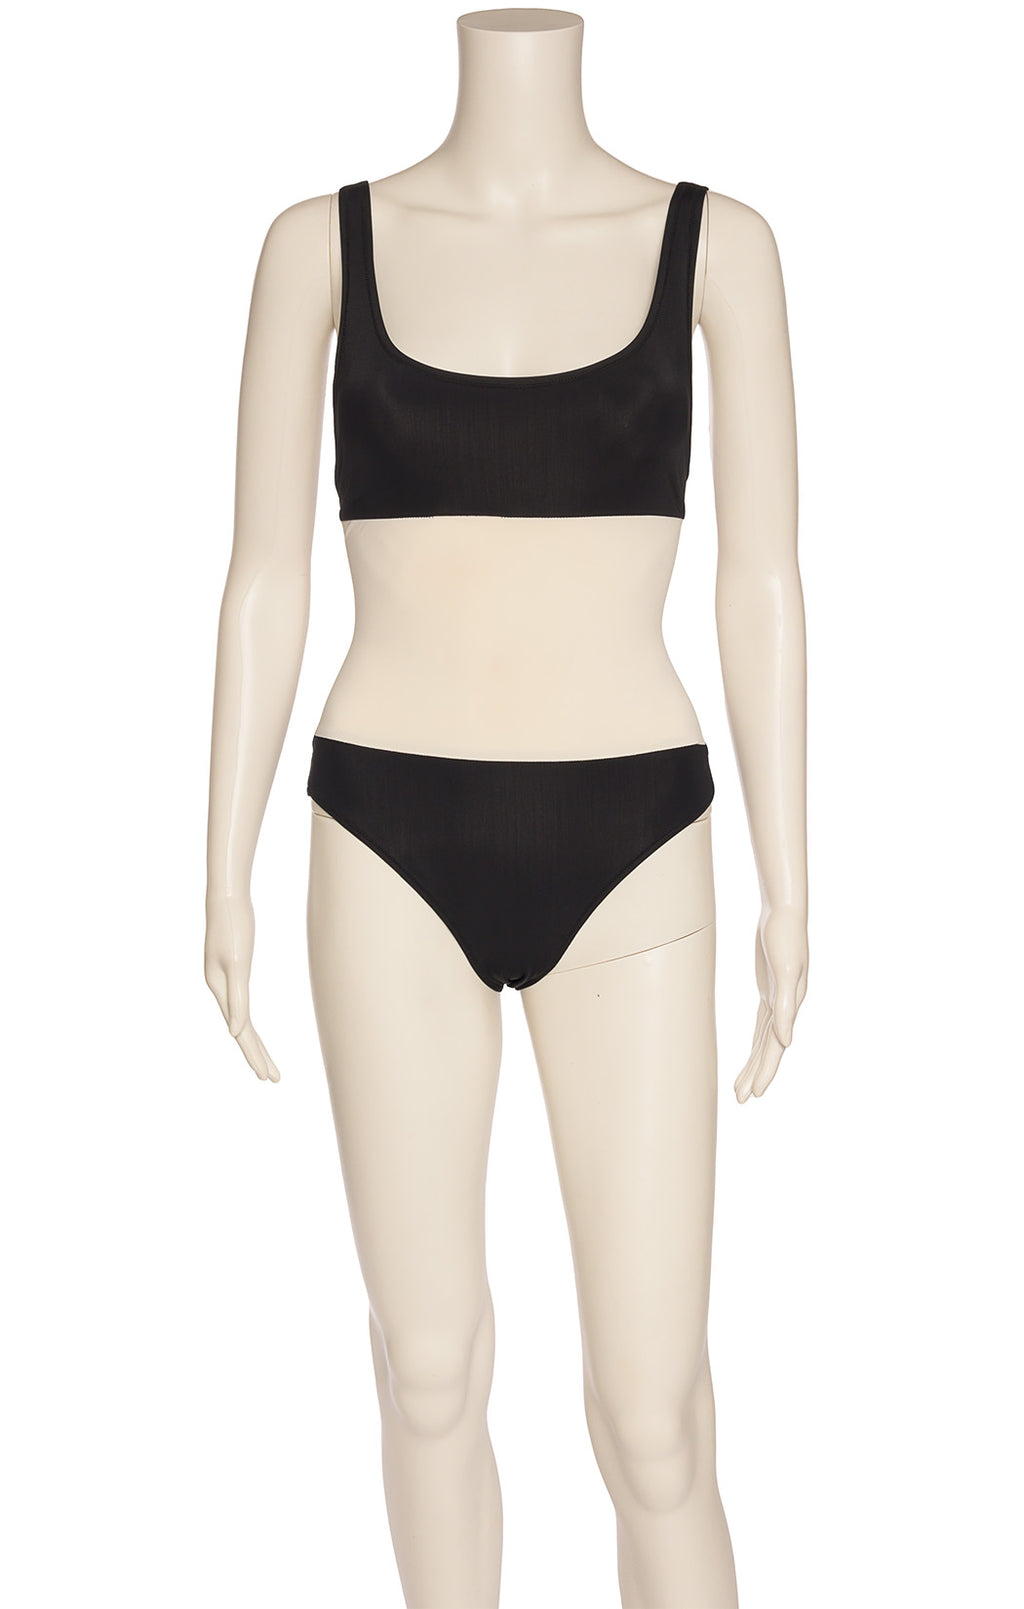 Front view of SOLID AND STRIPE One piece bathing suit Size: Medium